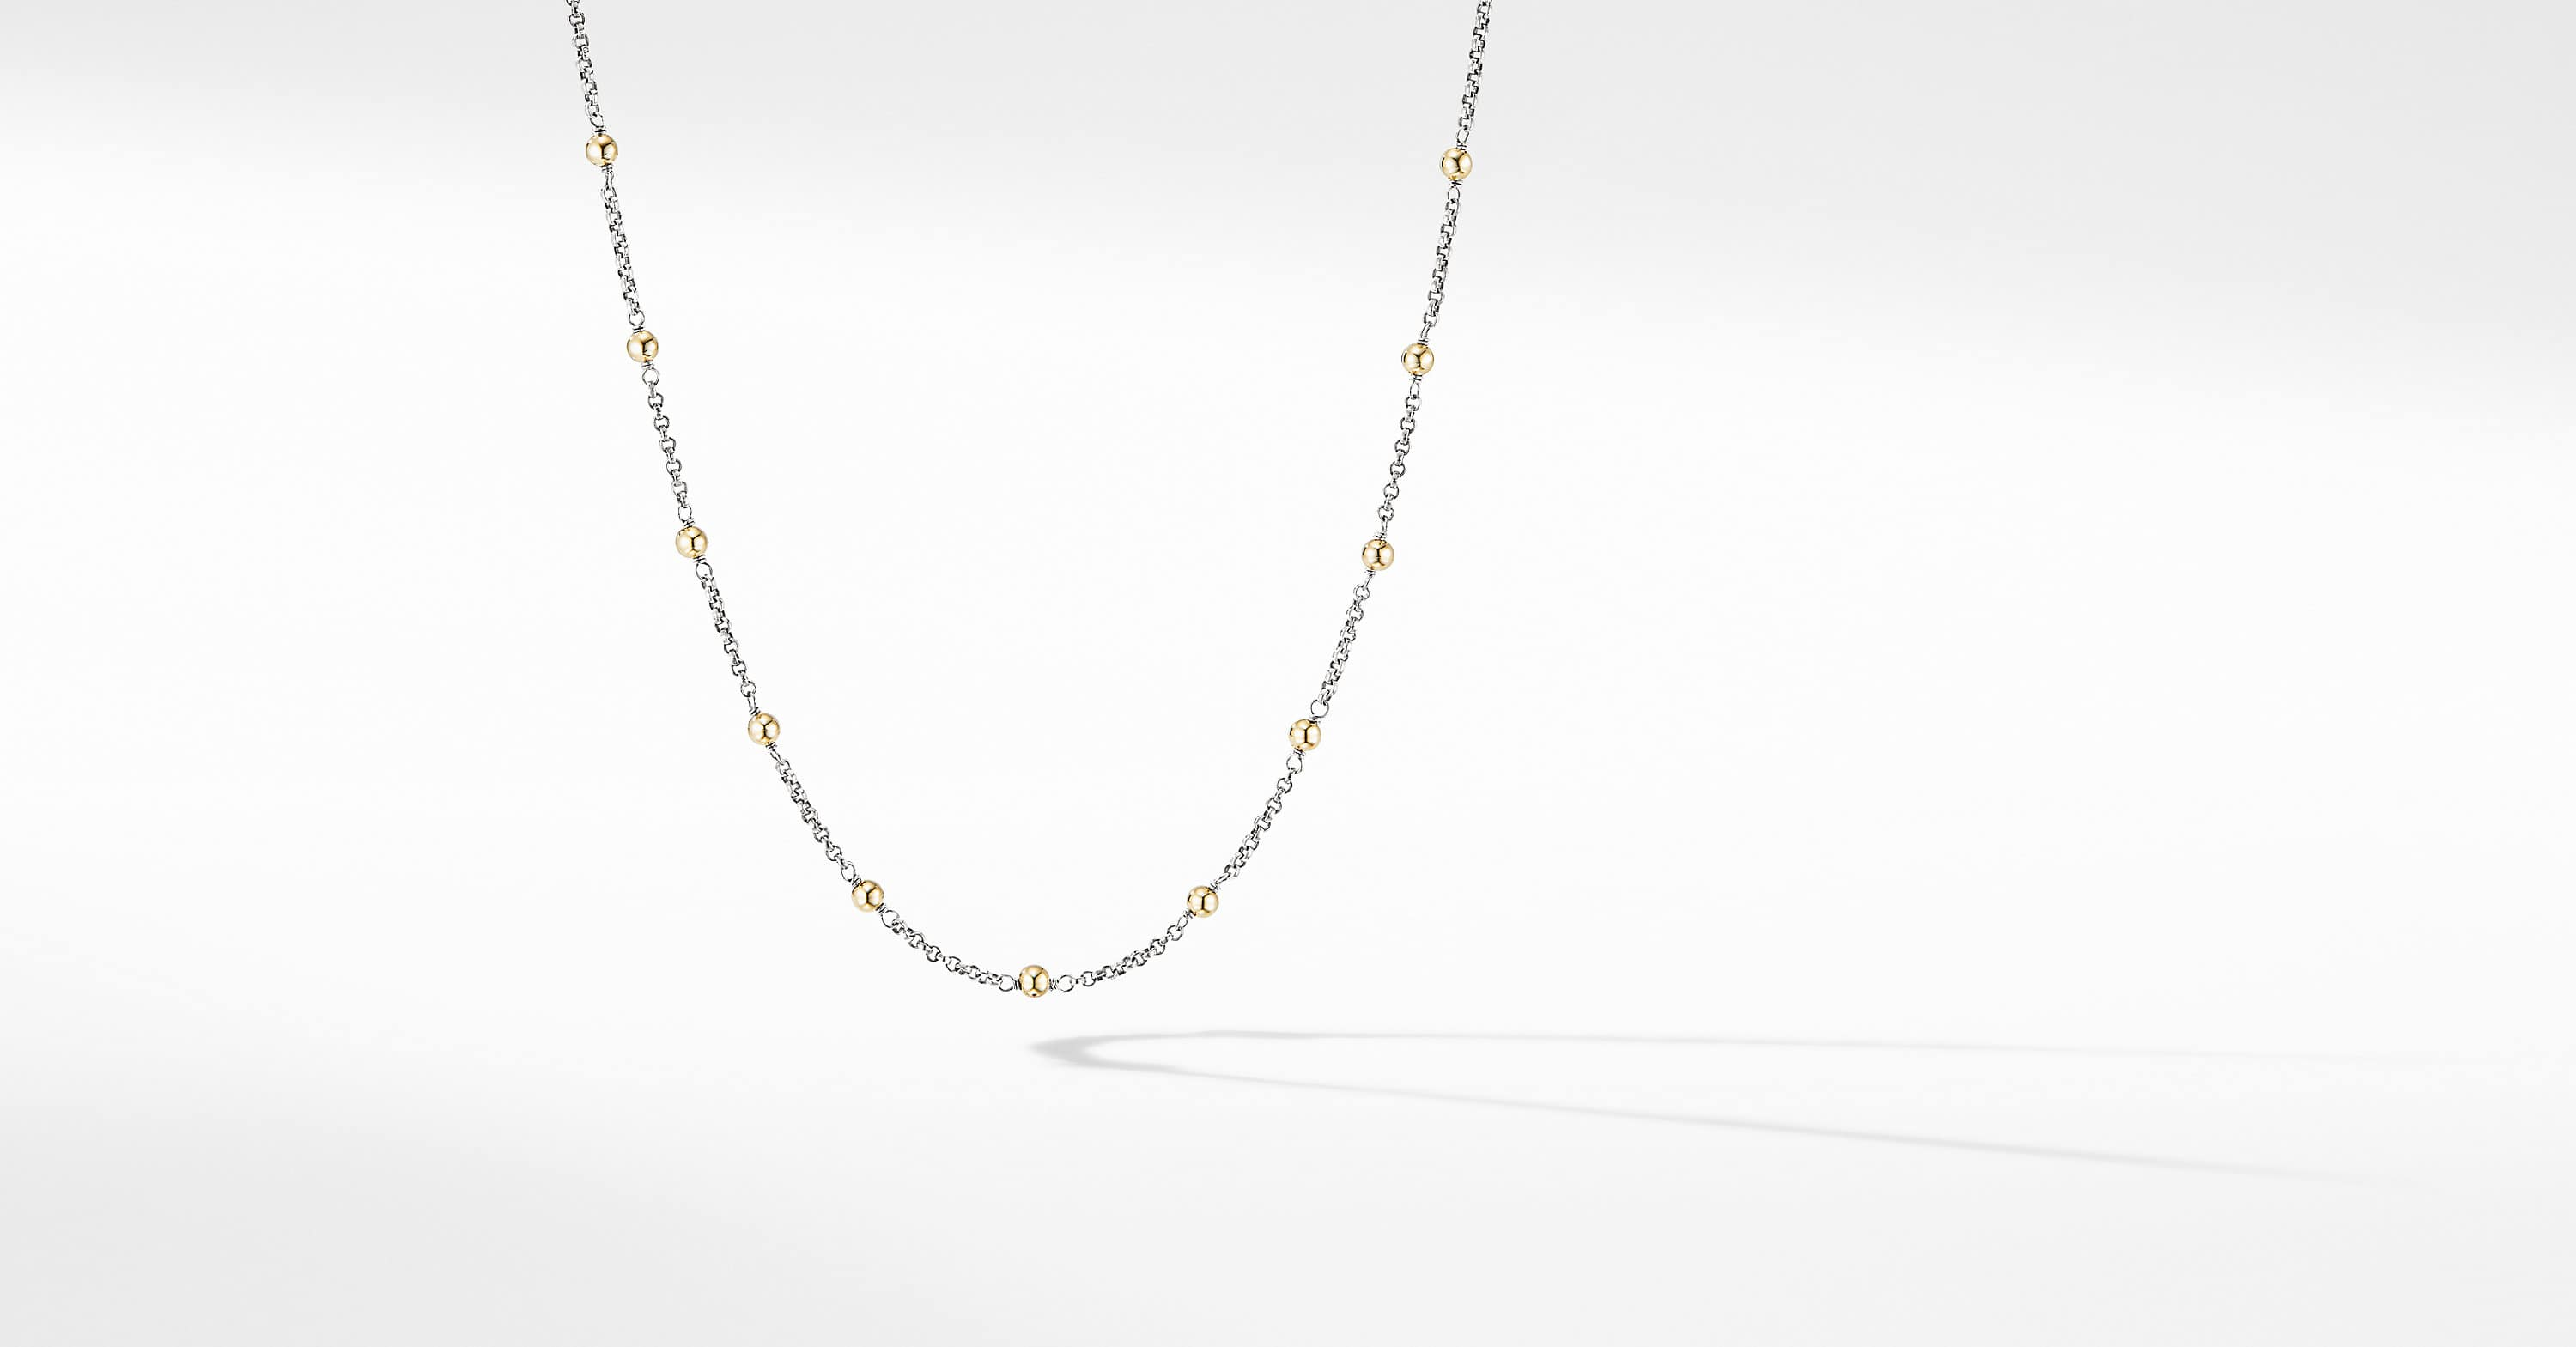 Cable Collectibles Bead and Chain Necklace with 18K Yellow Gold